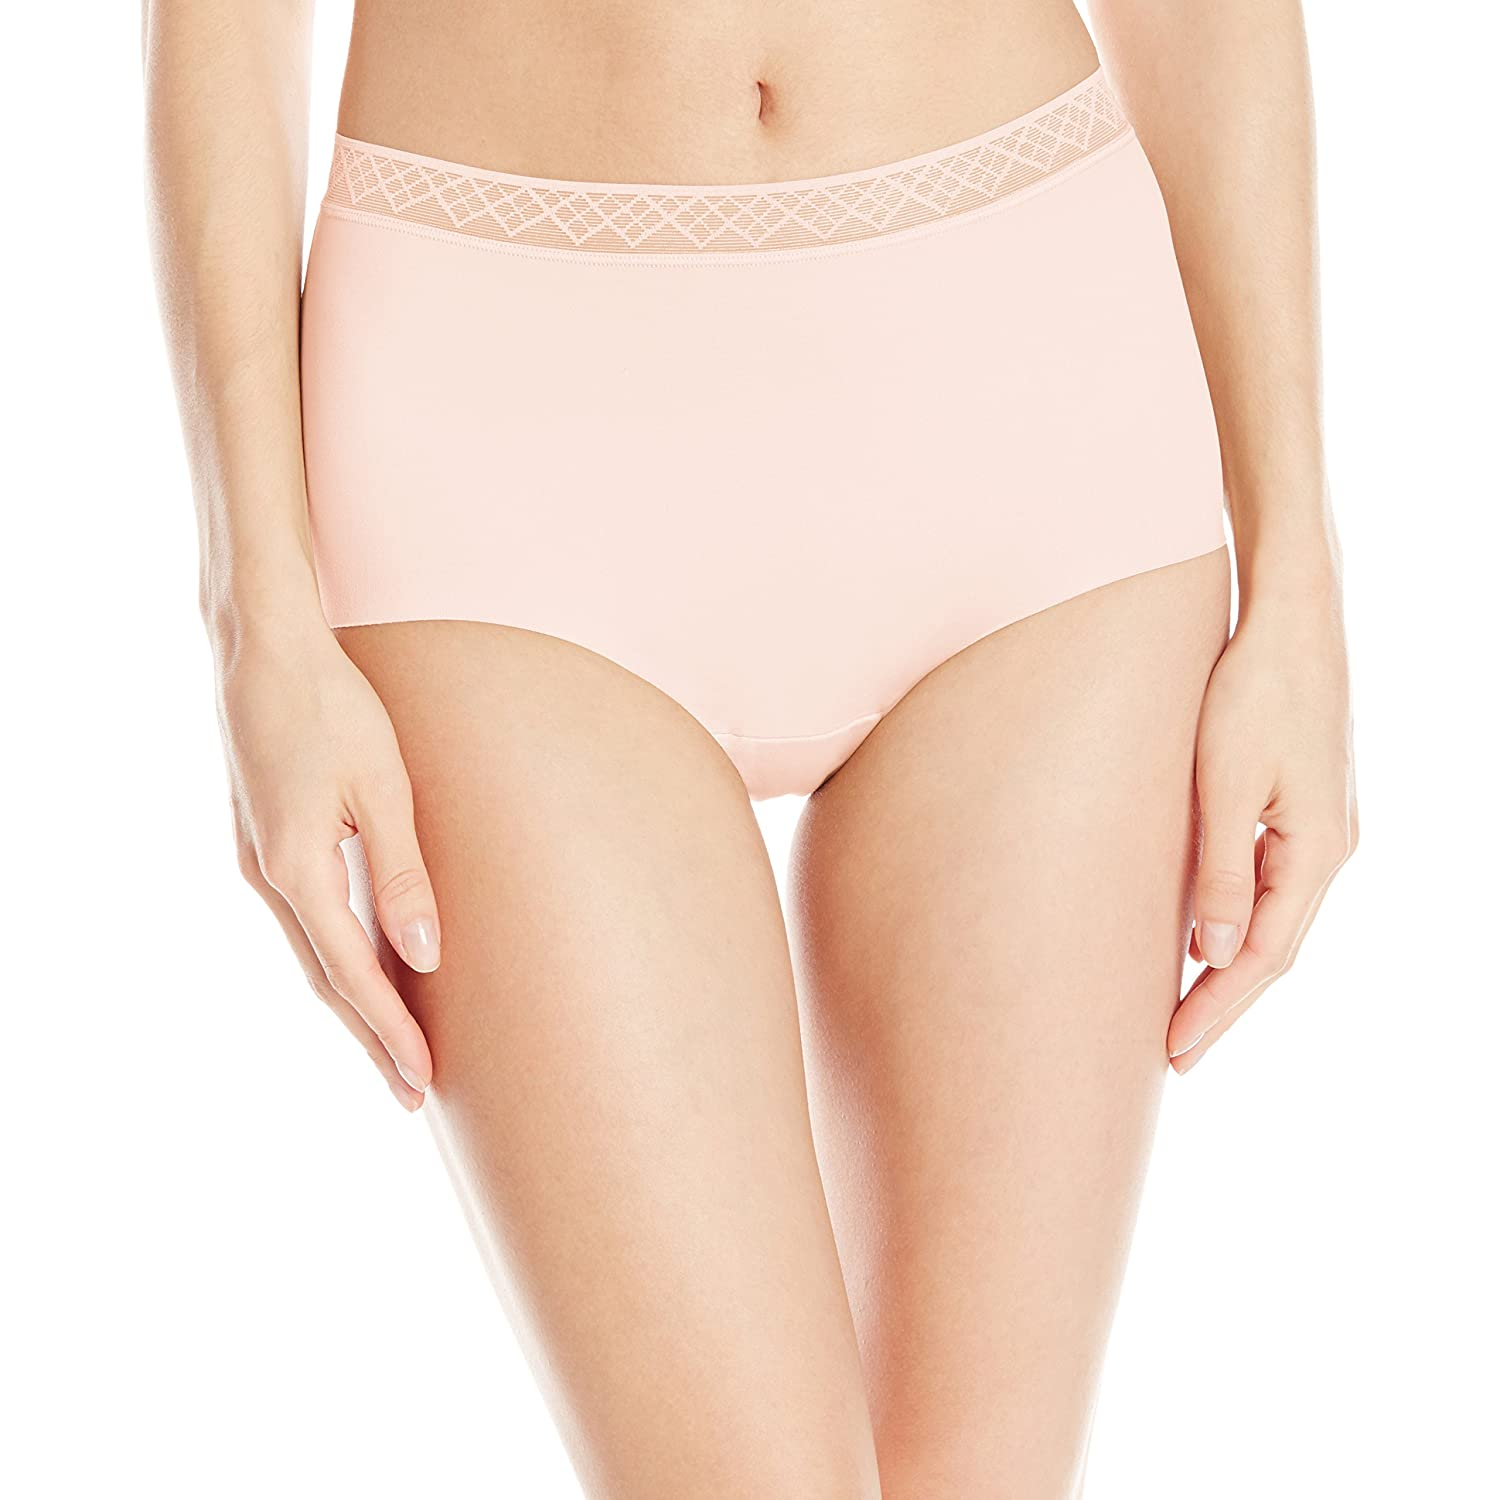 Vassarette womens Women's Invisibly Smooth Brief Panty 4813383